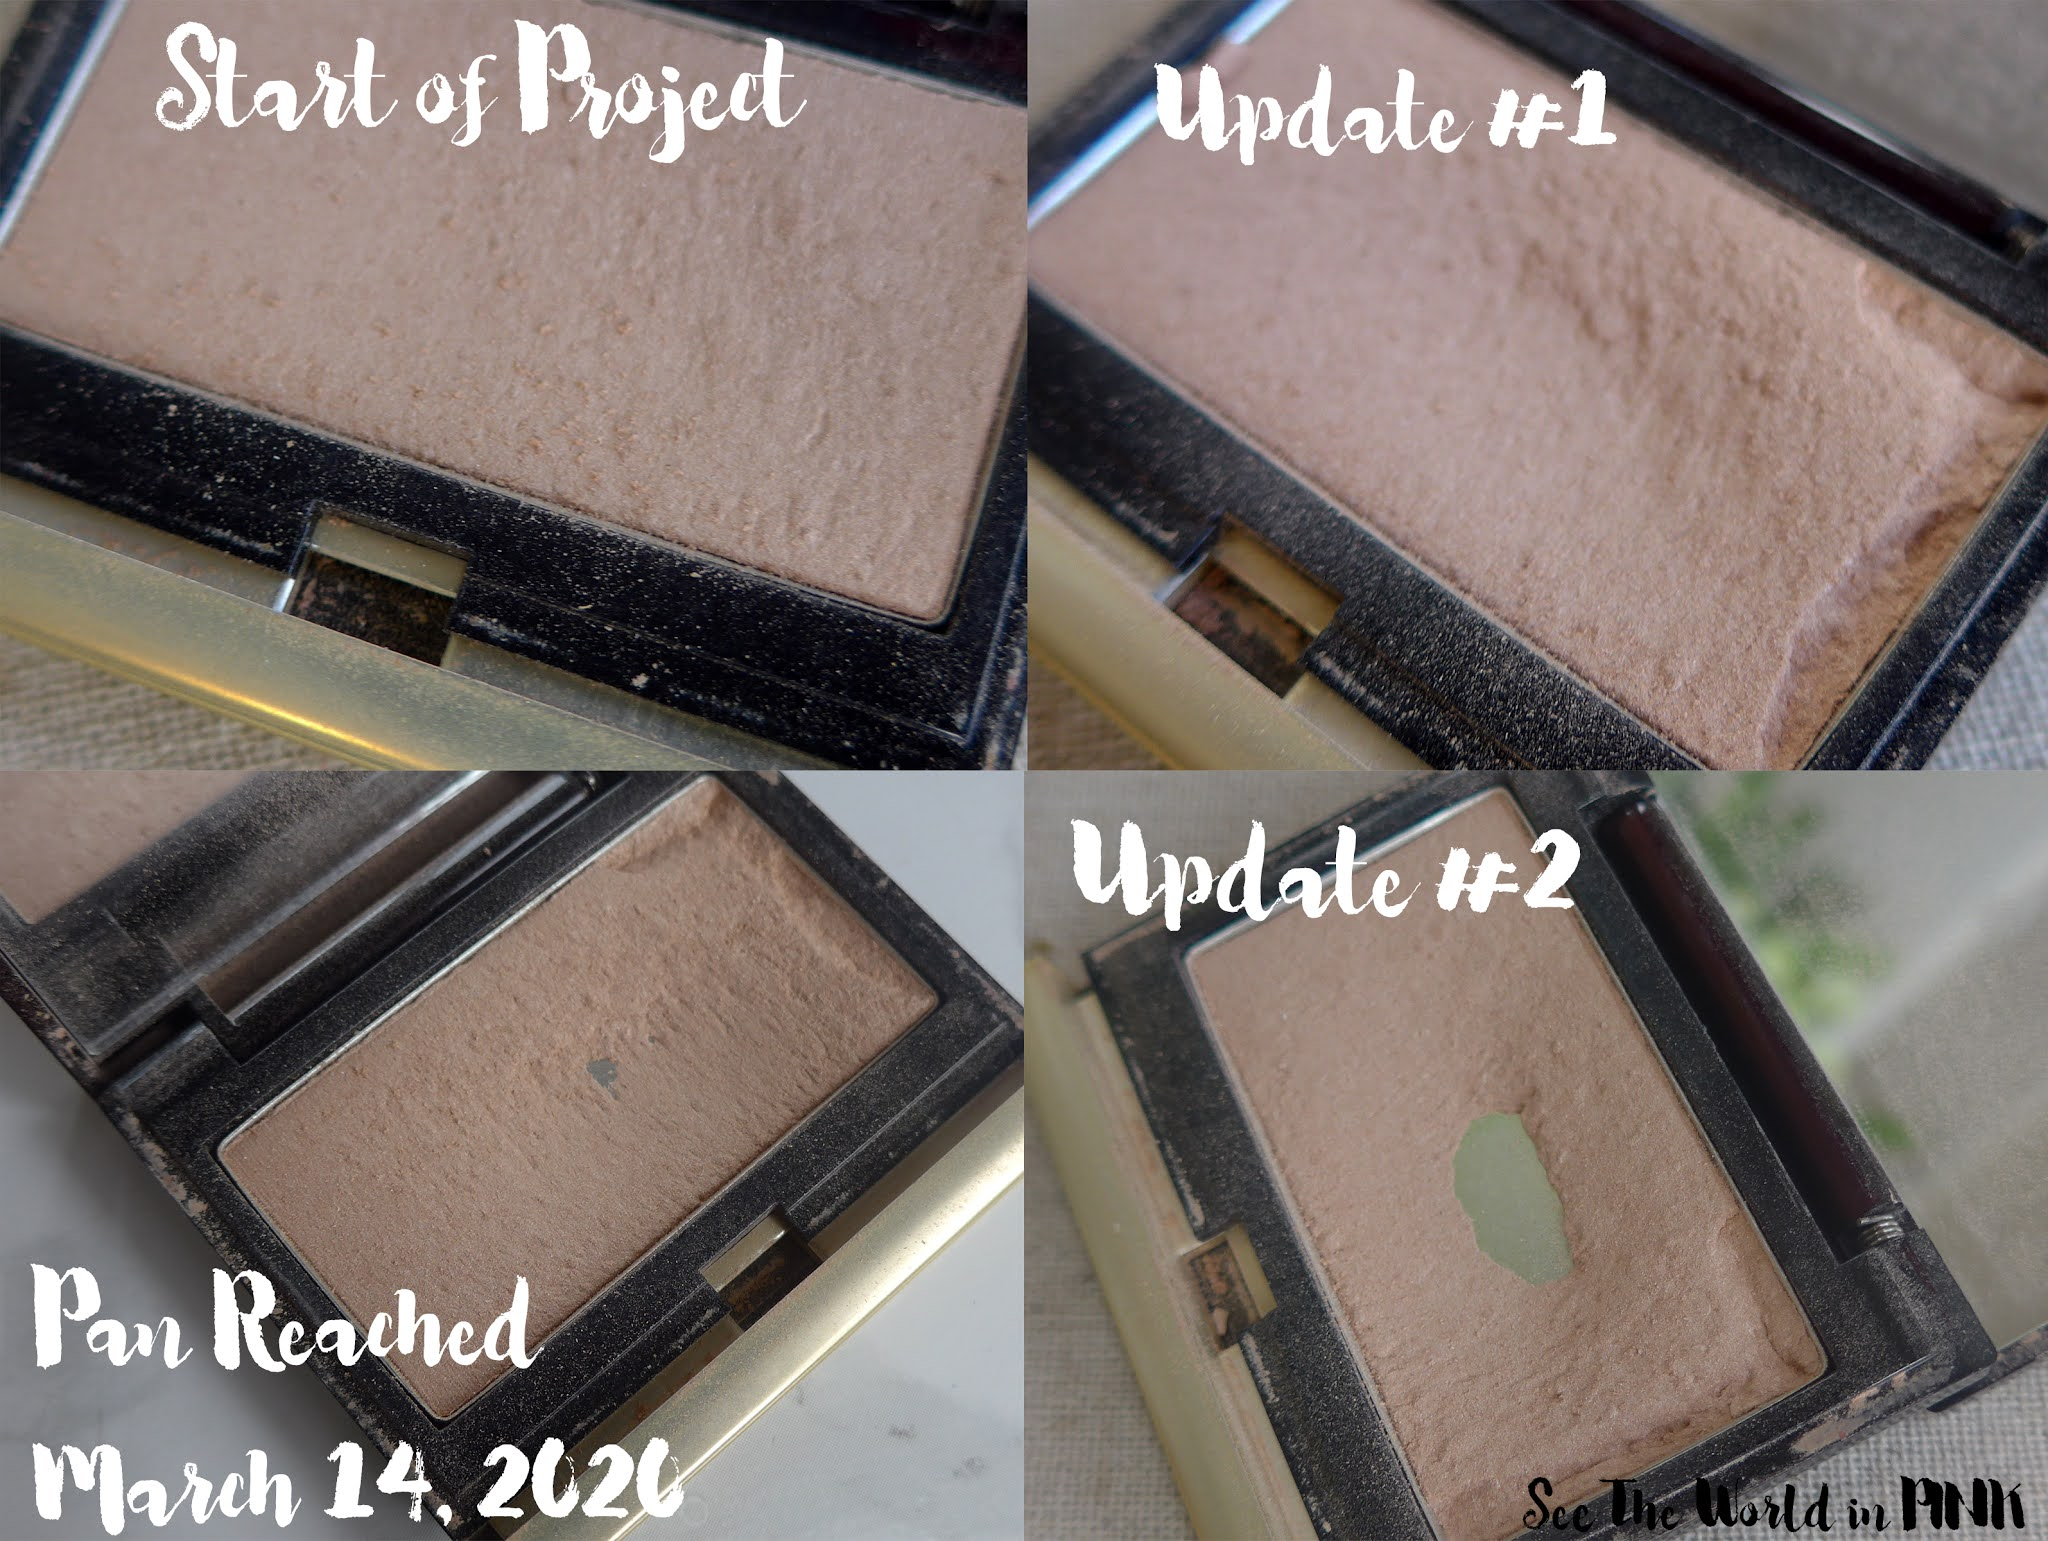 20 in 2020 Project Pan - Update #5